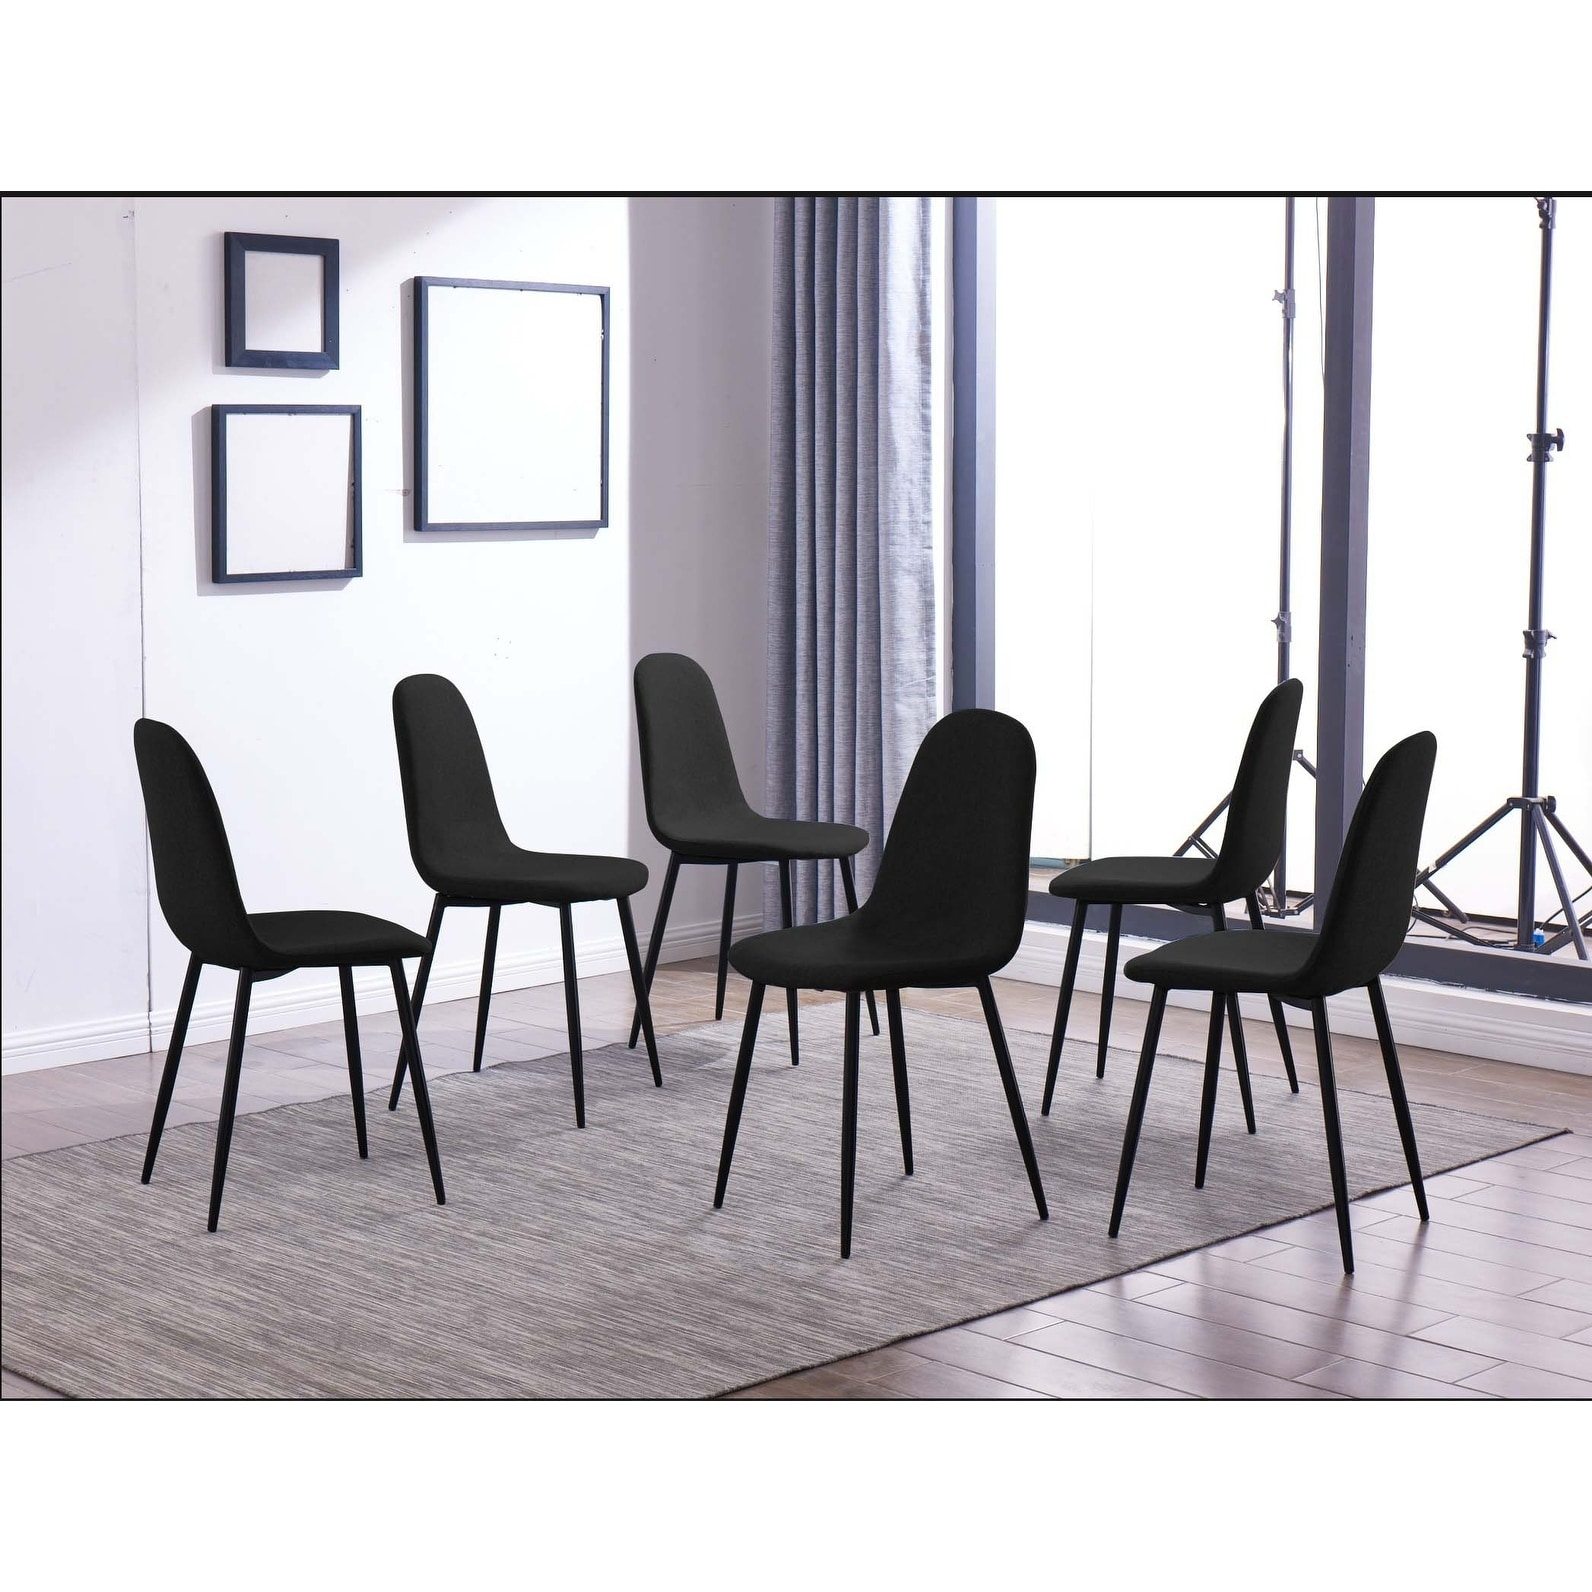 Dining Chair Set Of 6 Ids Online 6 Pieces Dining Chair Set One Size Gray